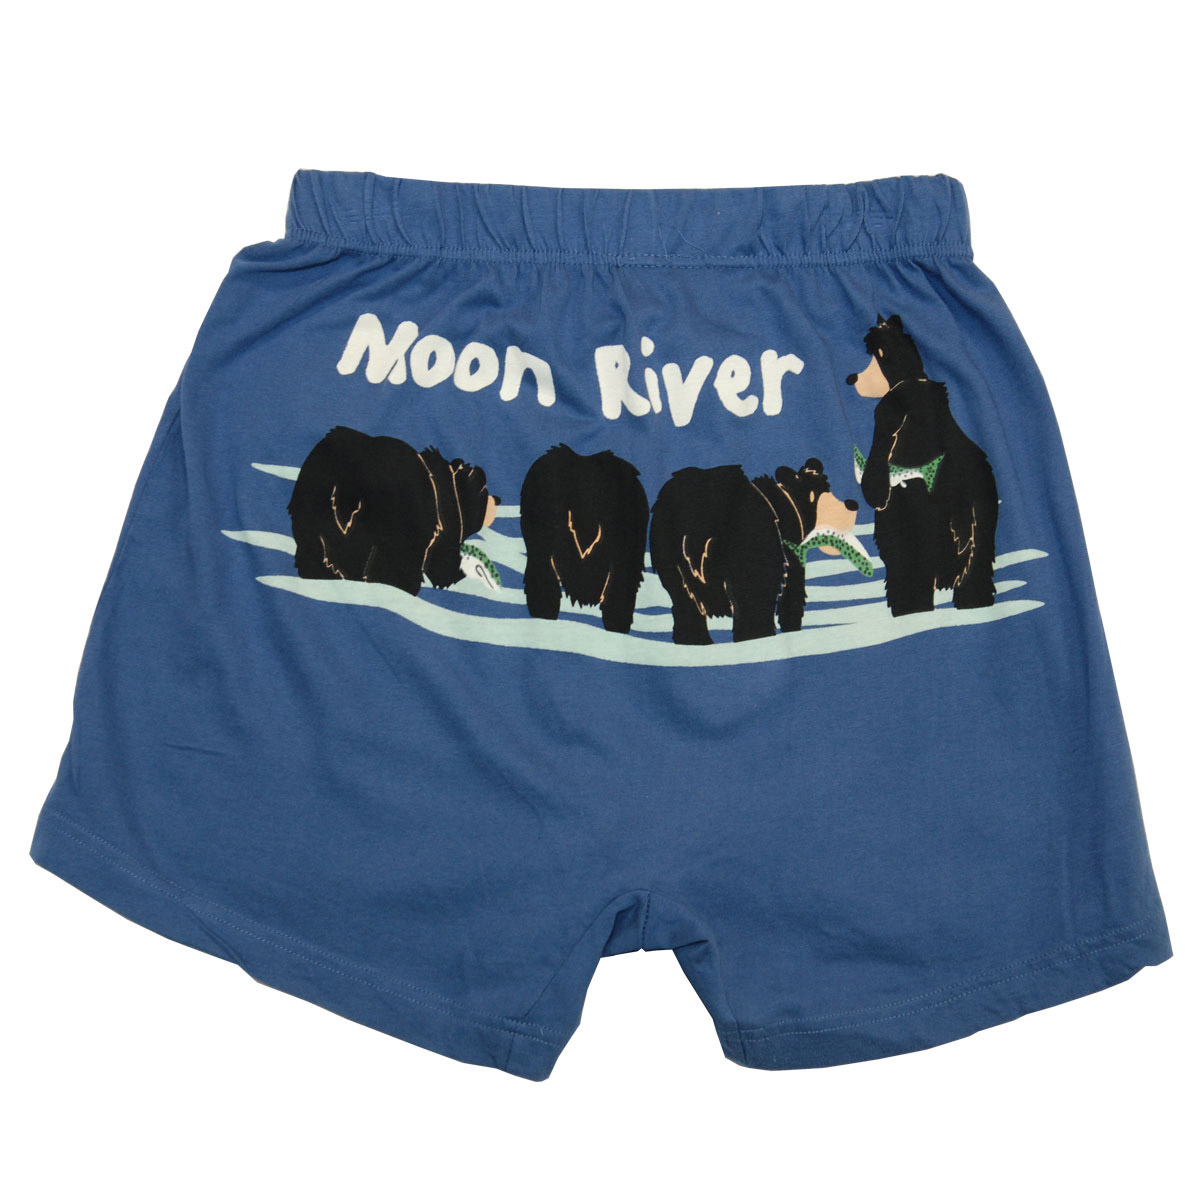 Adult Boxers - Moon River